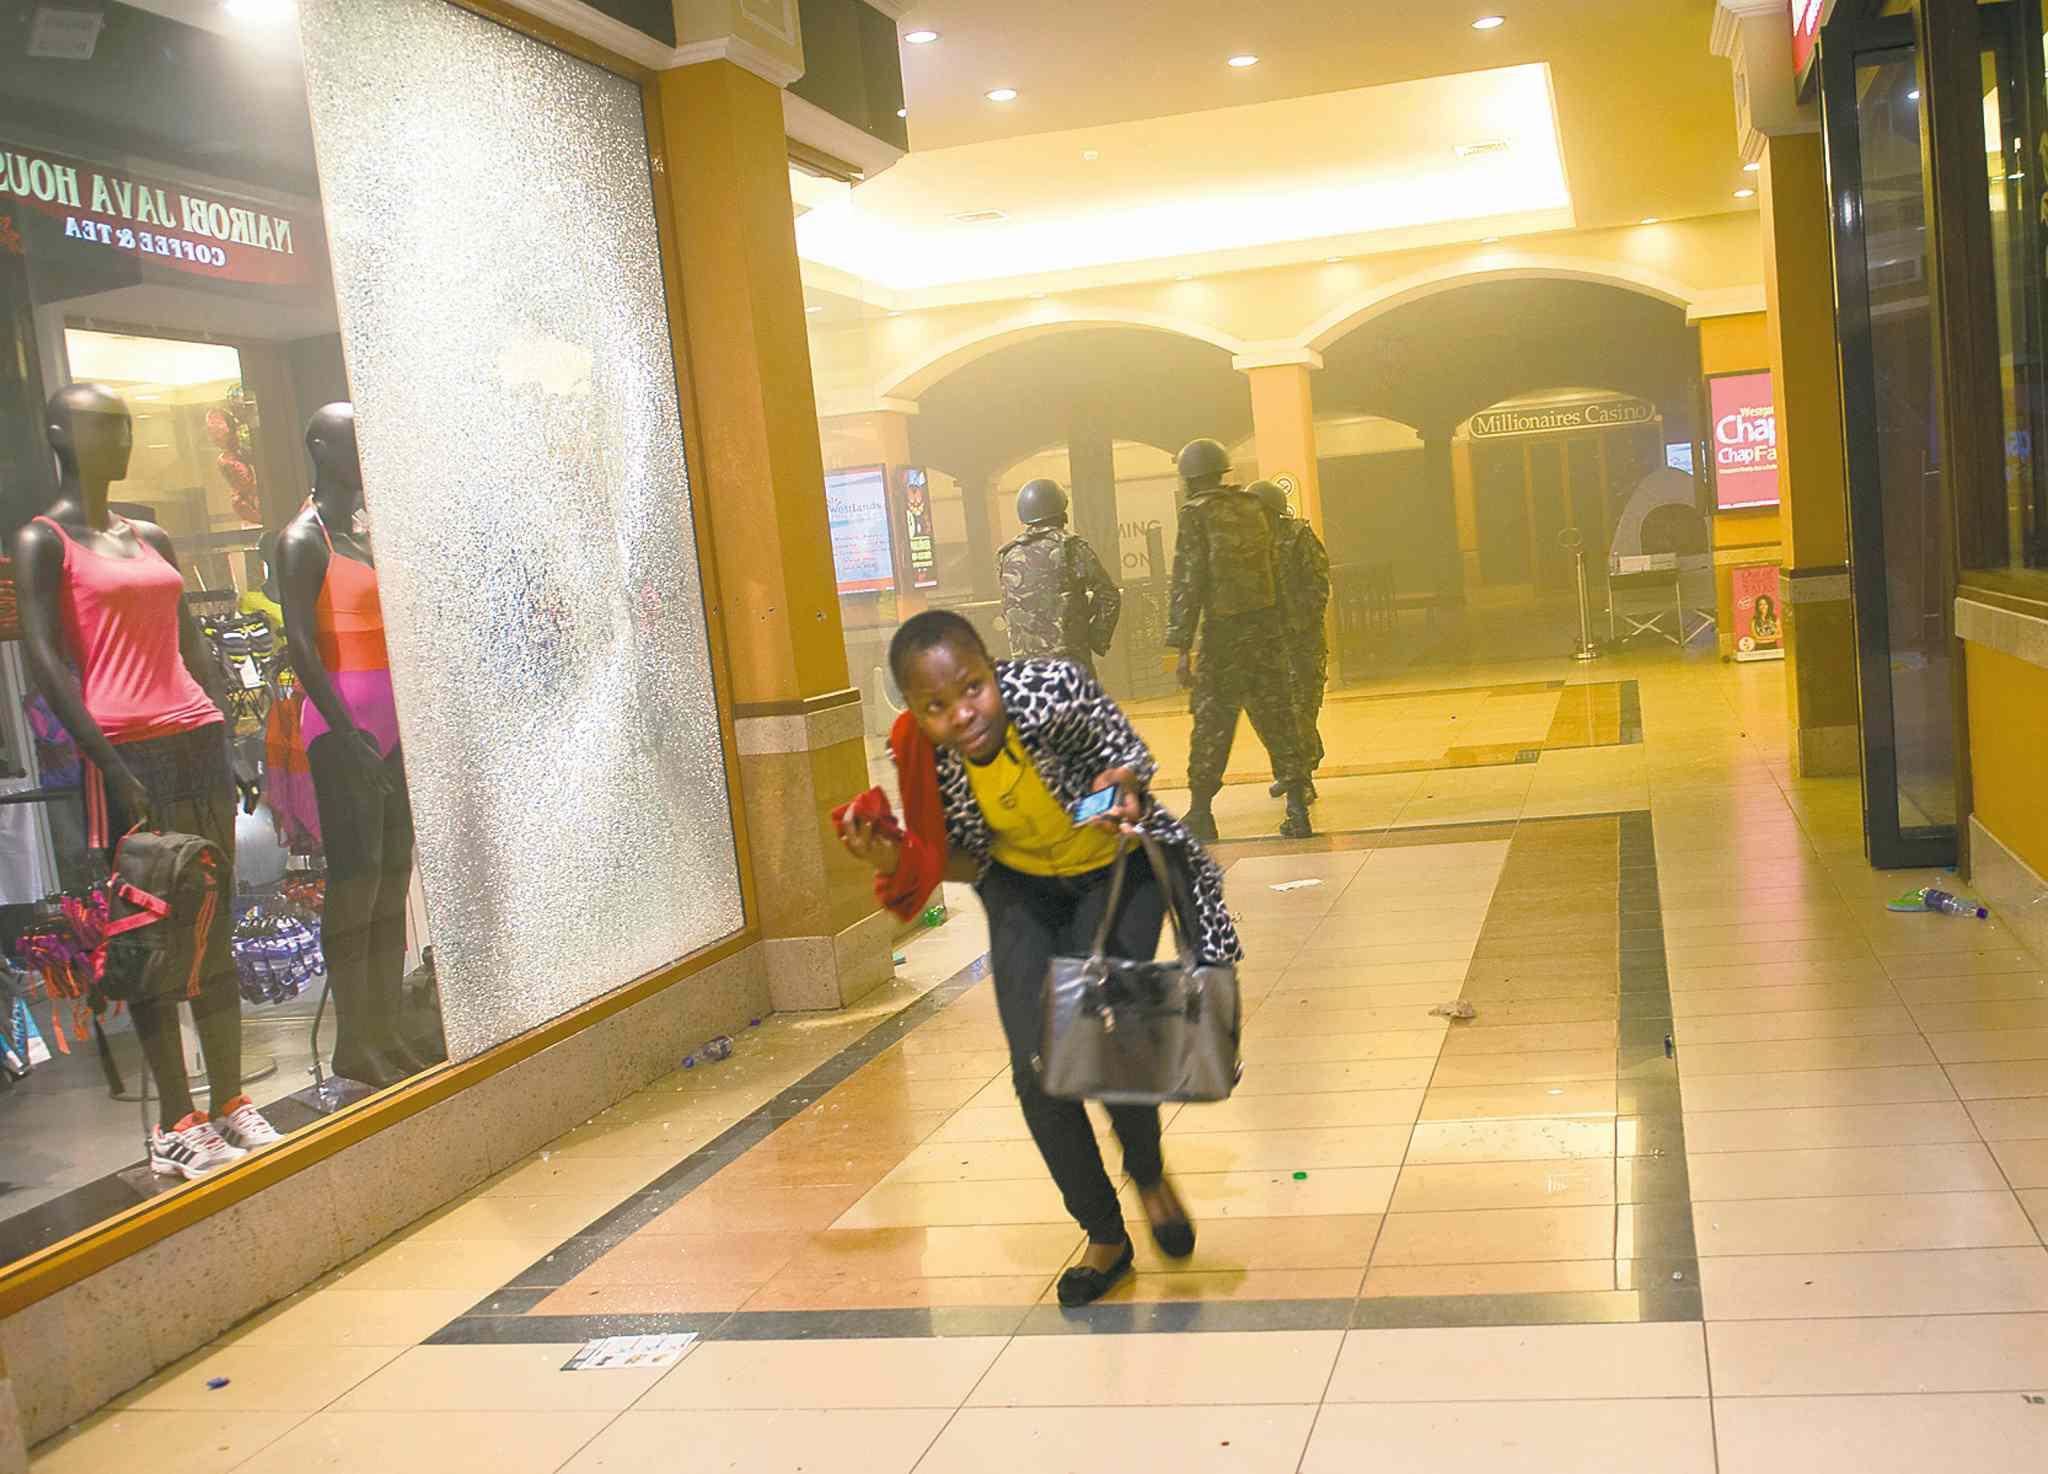 Jonathan Kalan / THE ASSOCIATED PRESSA woman who had been hiding during the gun battle runs for cover after armed police, seen behind, enter the Westgate Mall in Nairobi, Kenya, Saturday.